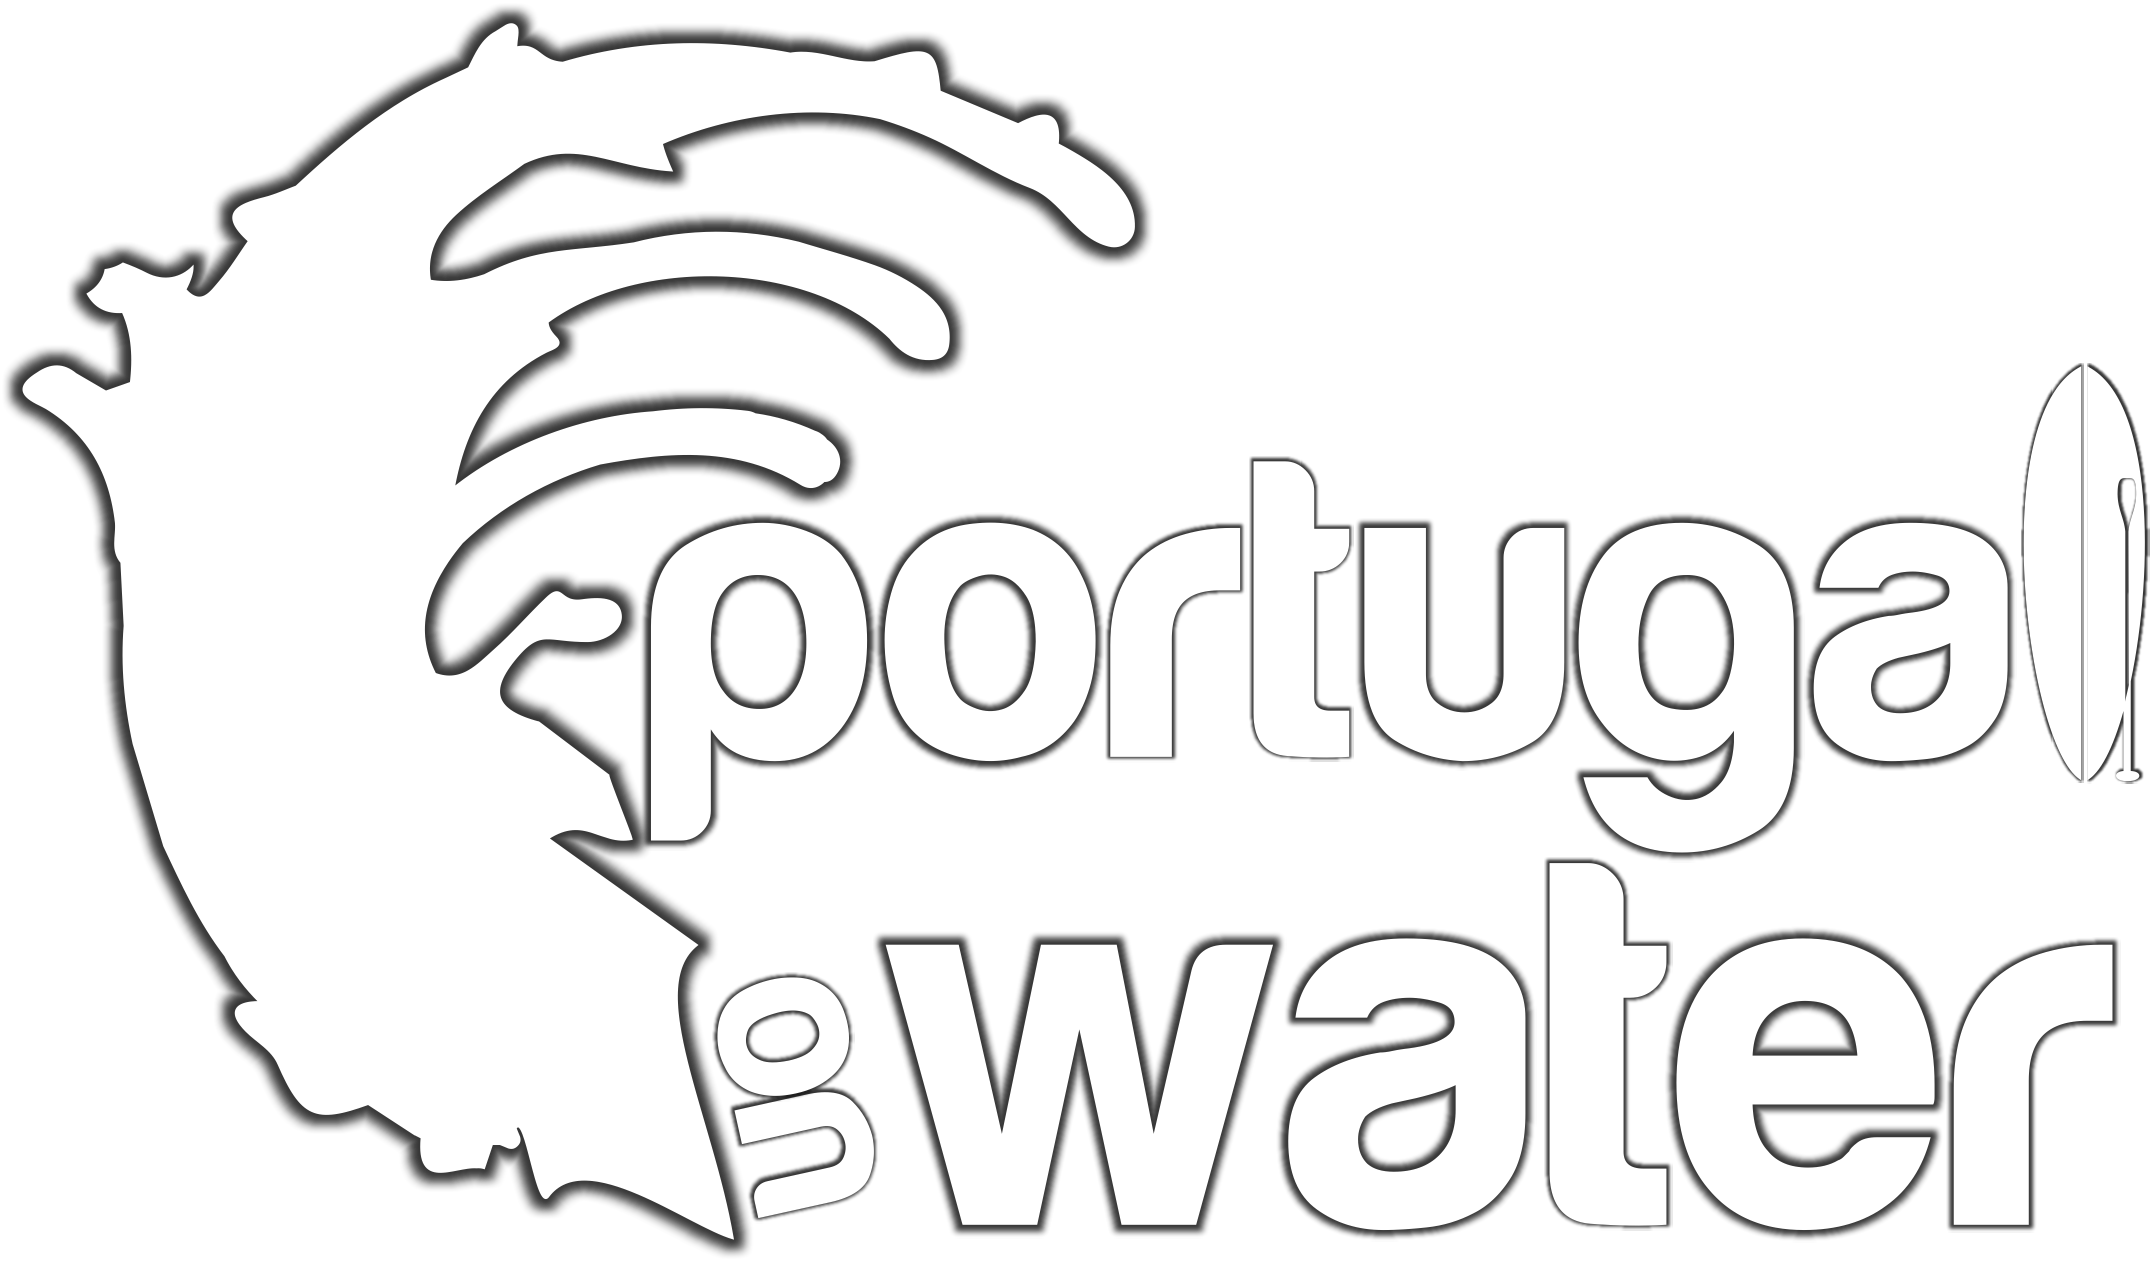 Portugal On Water - logo